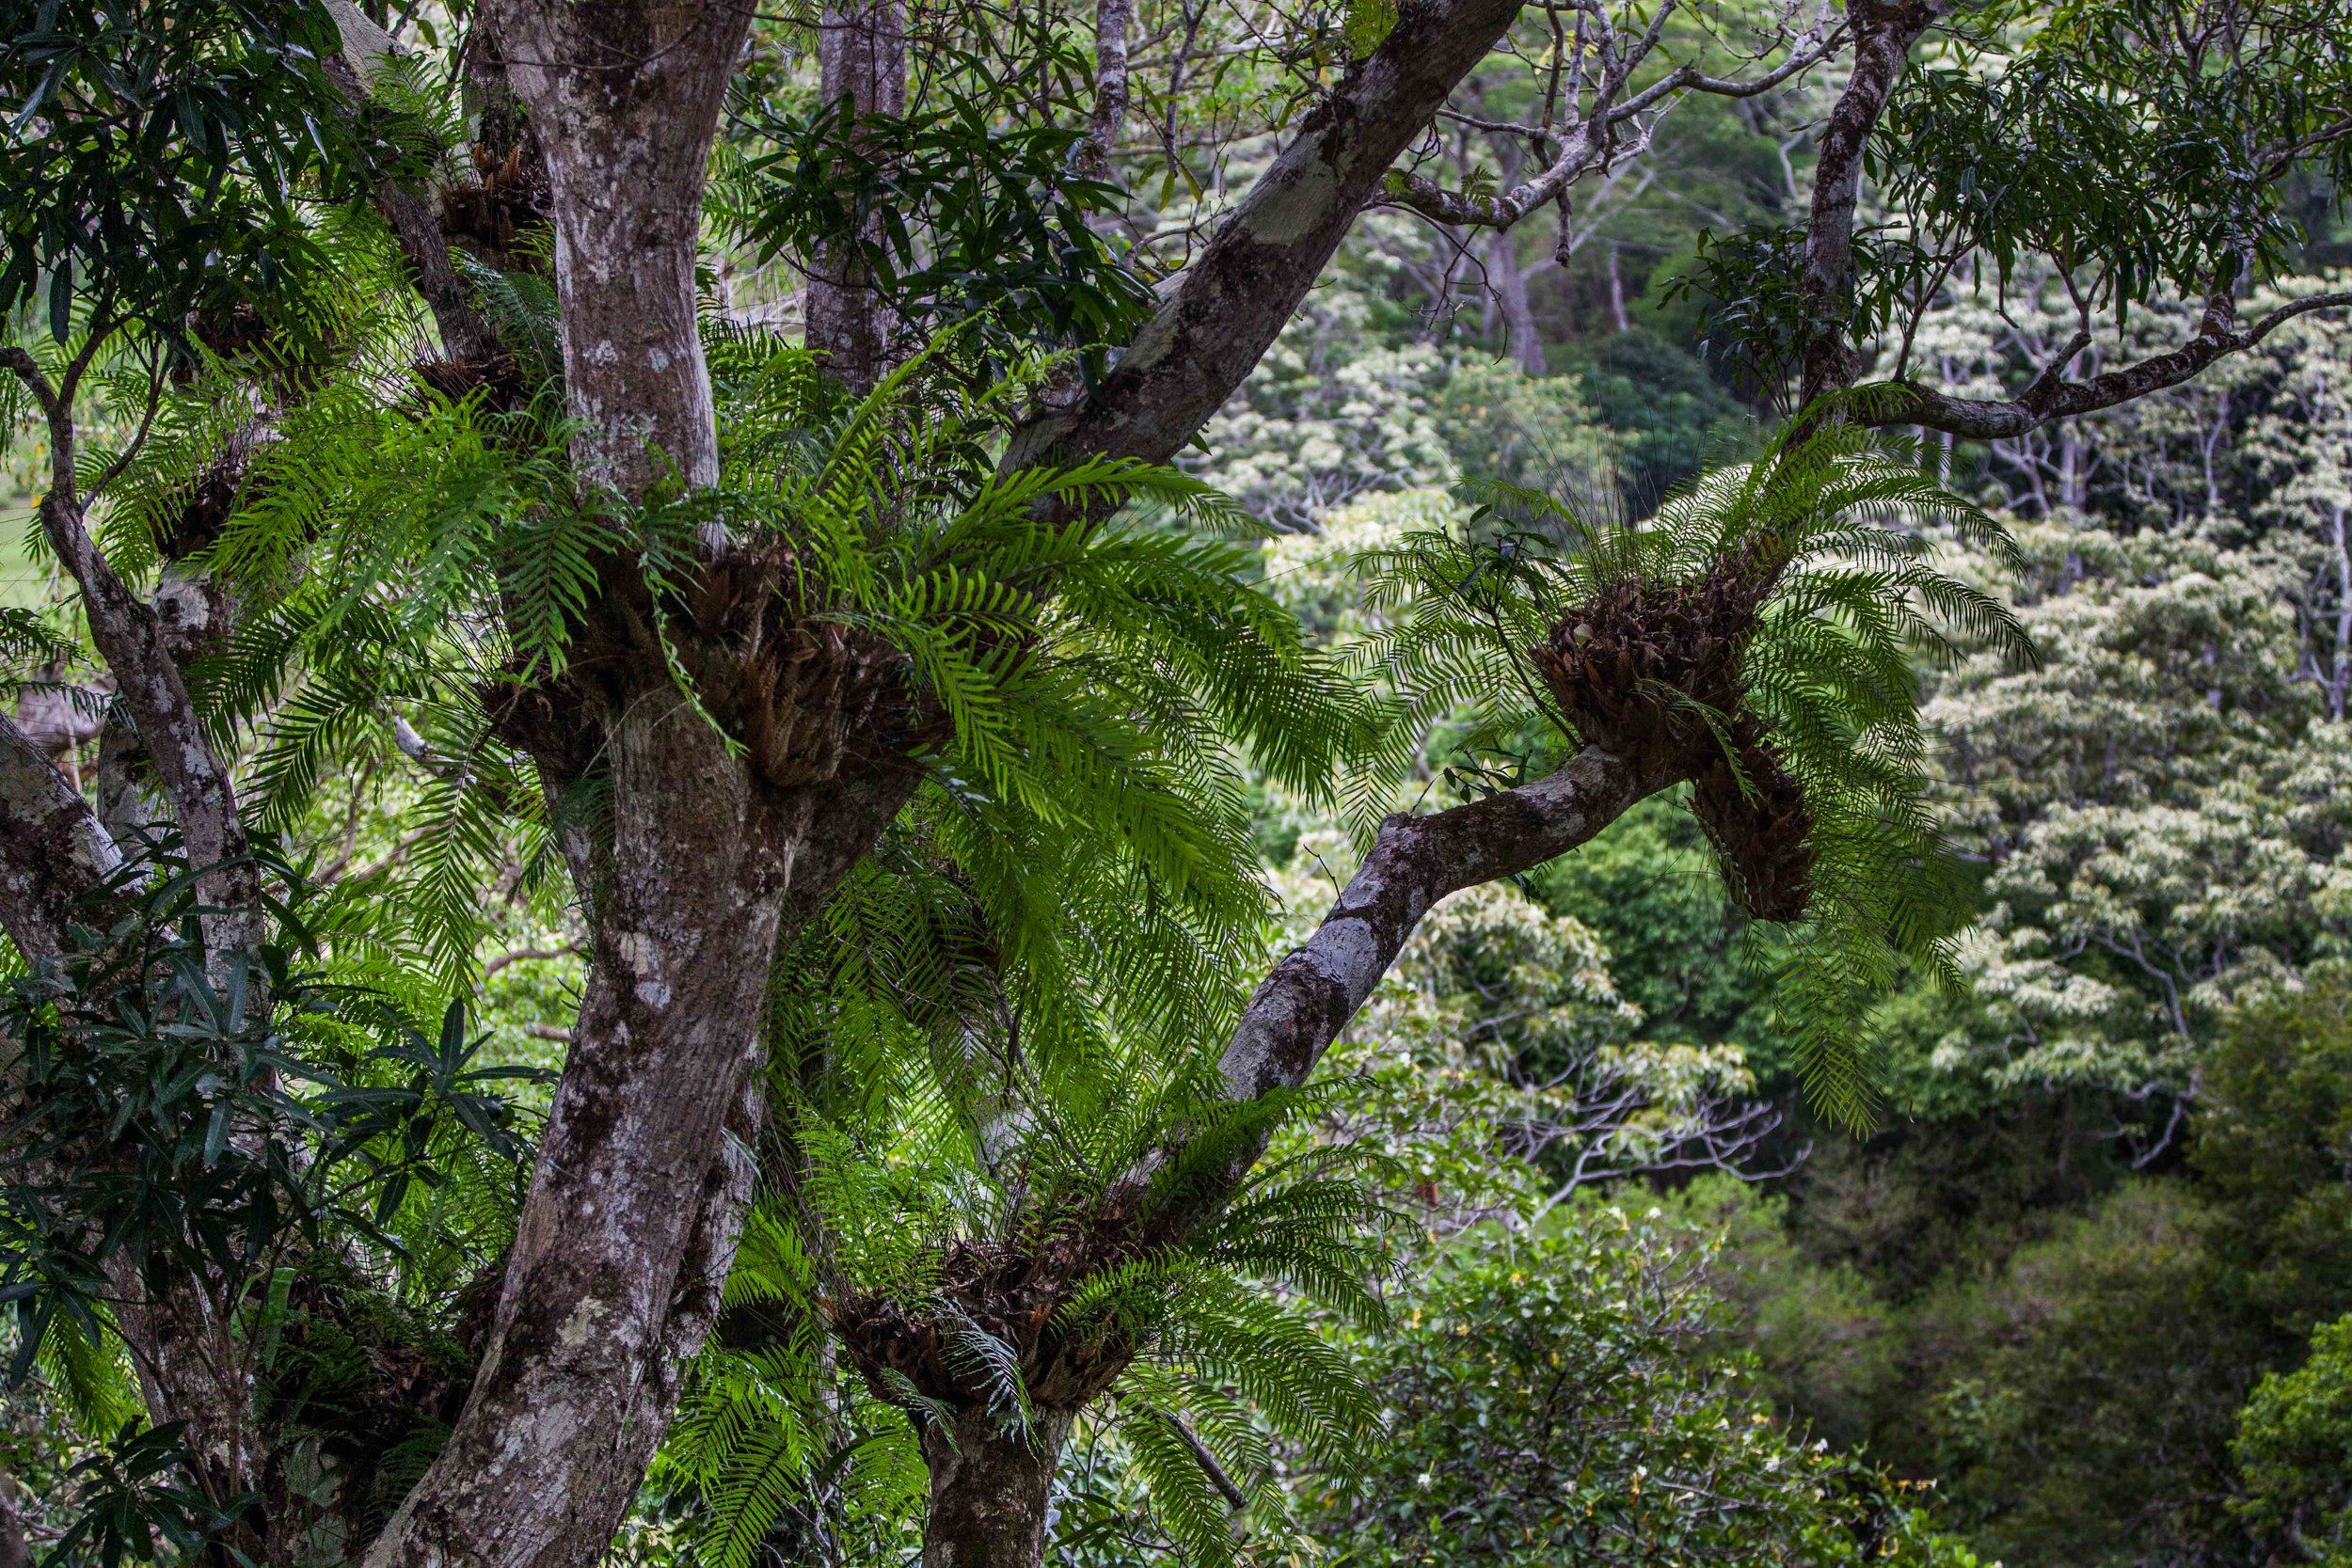 Epiphytes in New Caledonia, Jan. 2016